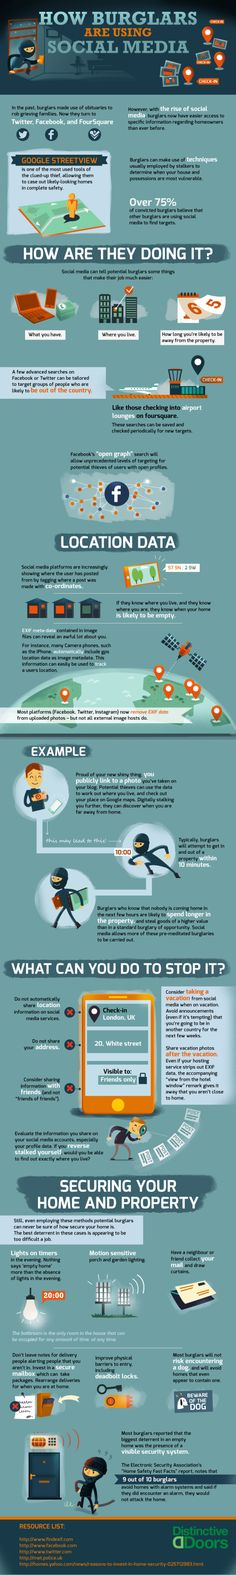 How Burglars Are Using Social Media [Infographic]